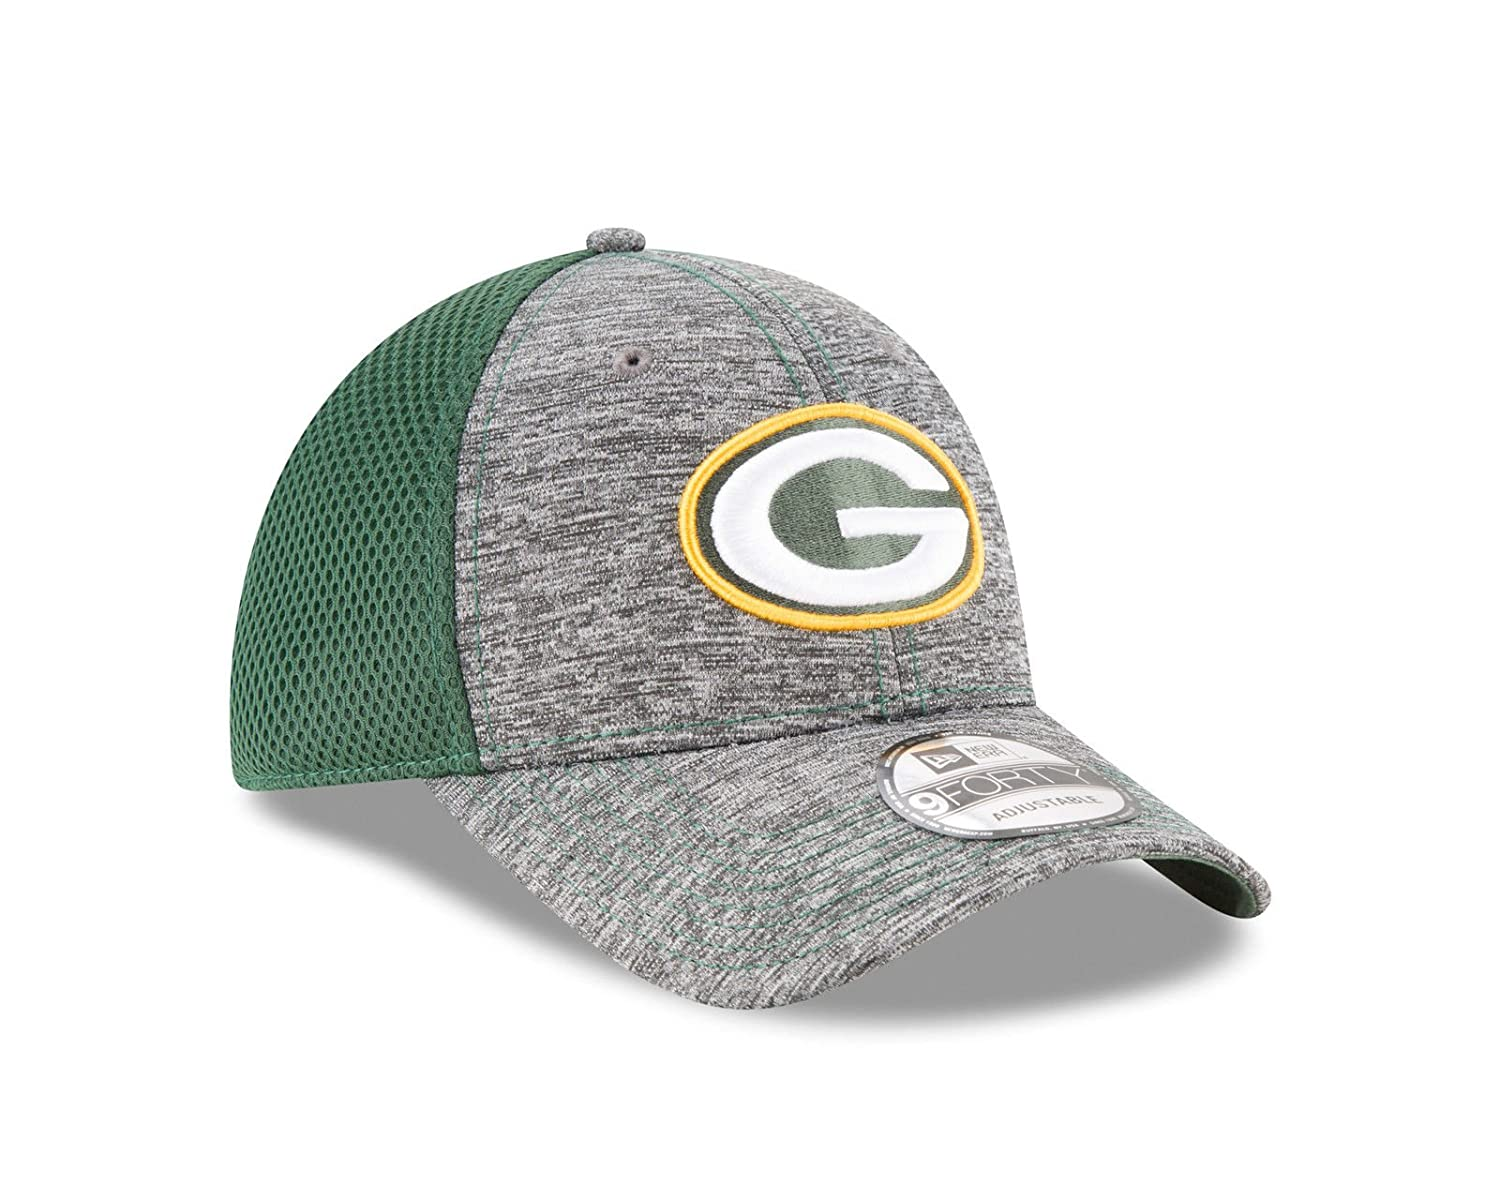 06bd982e2909 Amazon.com   New Era Green Bay Packers Shadow Turn 9FORTY Adjustable  Strapback Hat   Sports   Outdoors